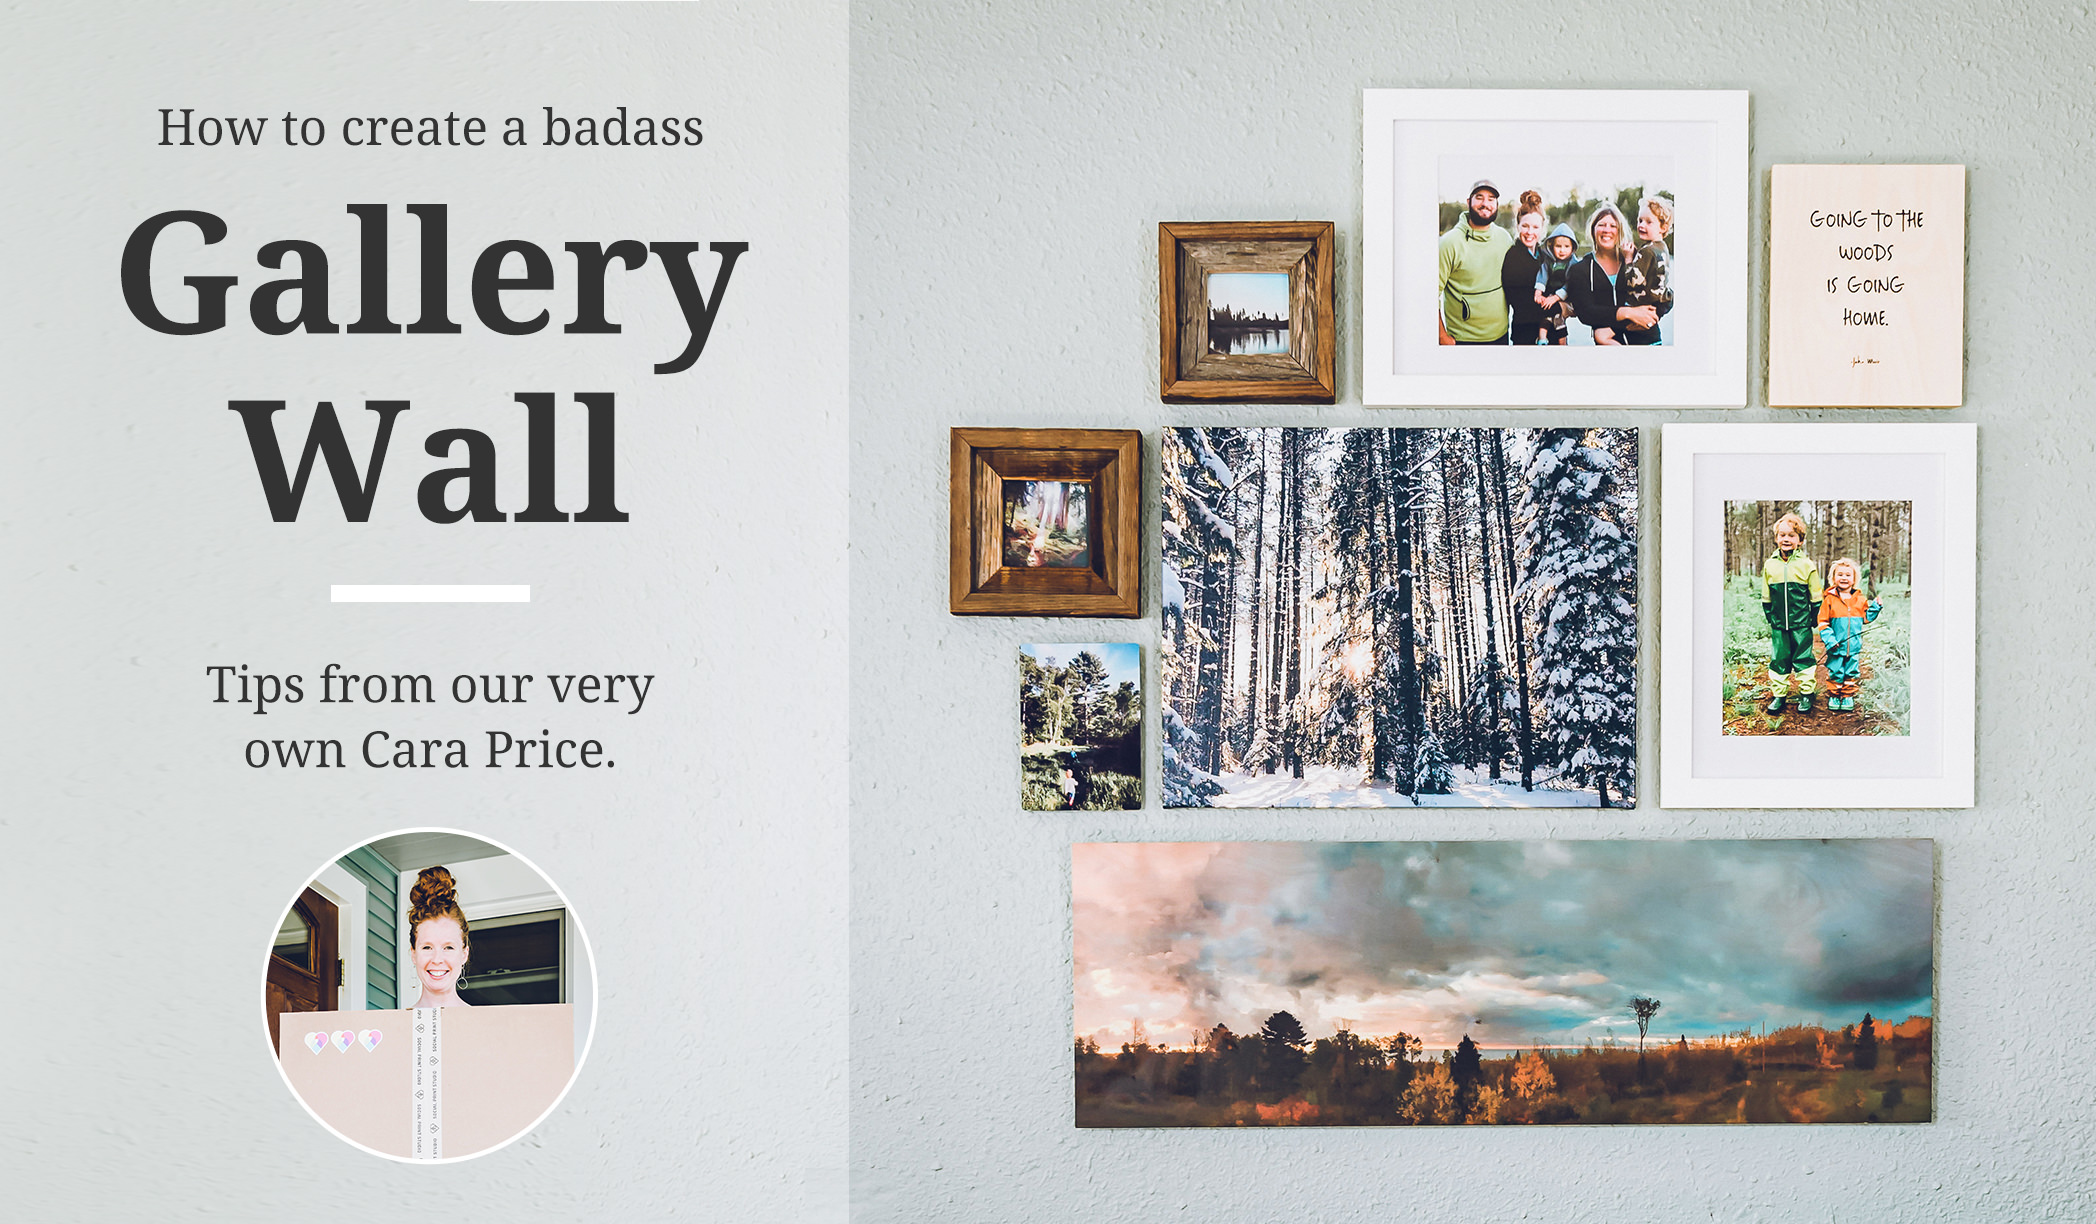 Gallery Wall Tips by our very own Cara Price.